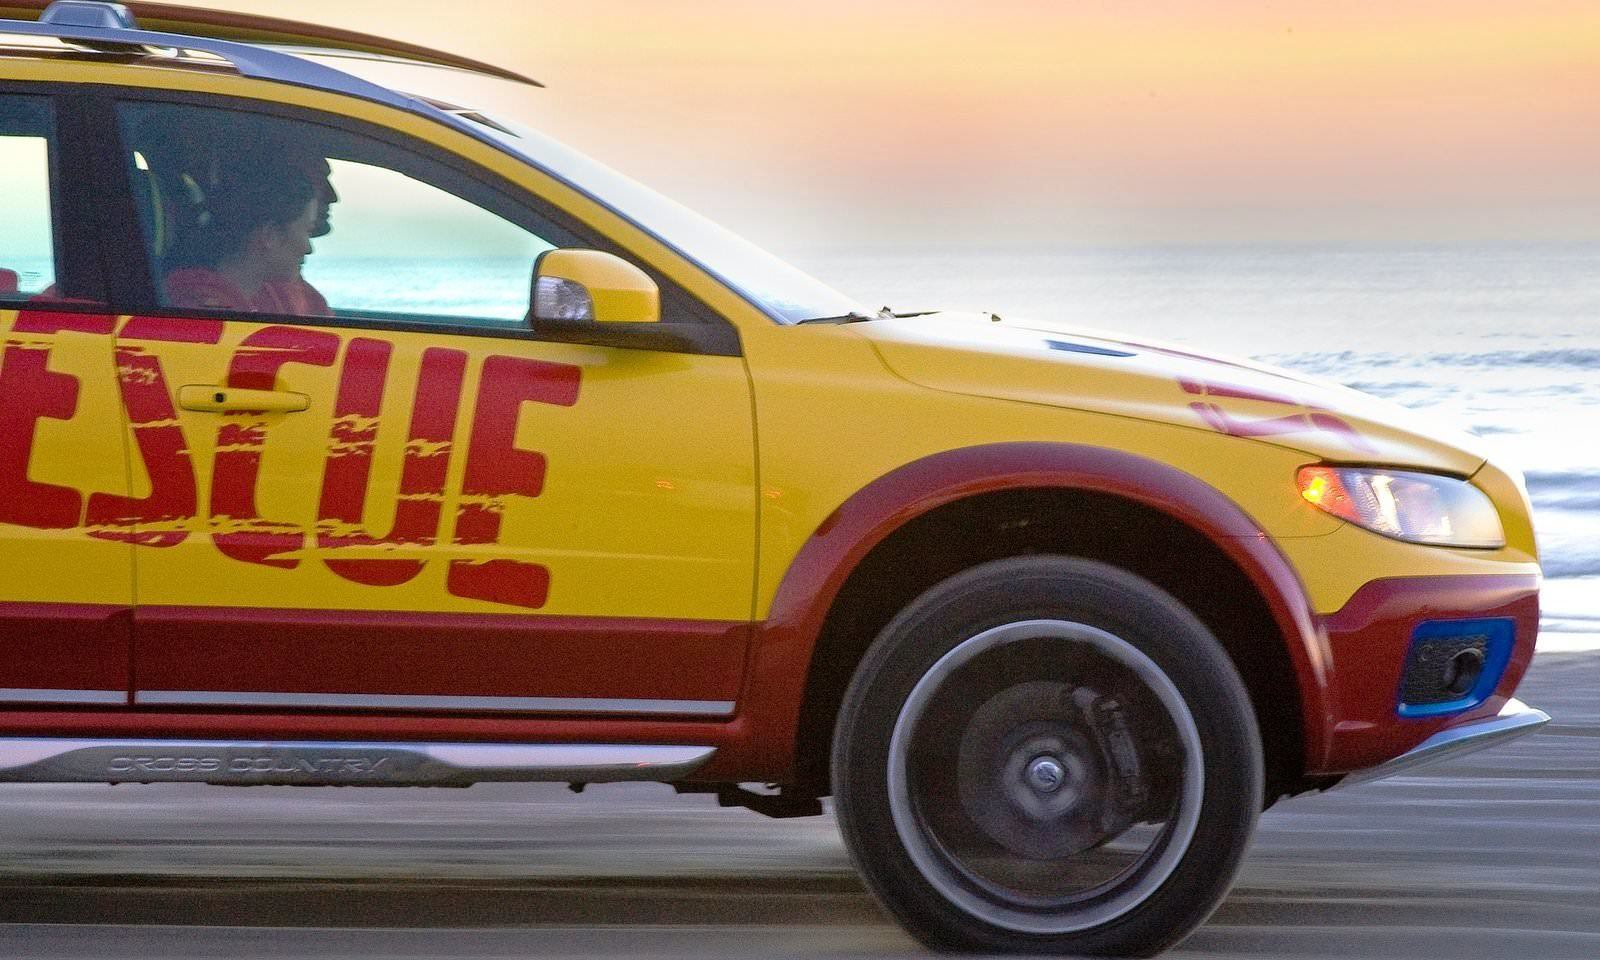 2005 Volvo XC70 AT and 2007 XC70 Surf Rescue are California Surf'n'Turf Dreams 35